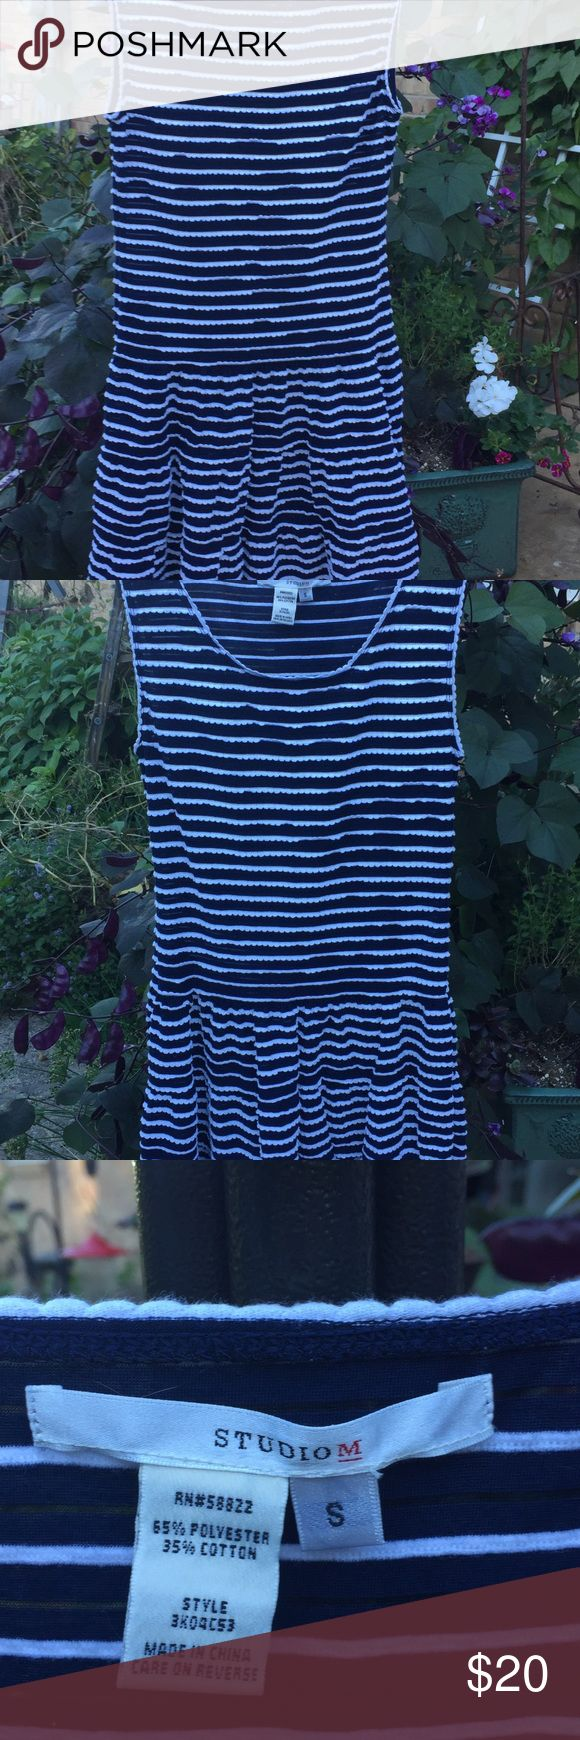 """Navy with White Scalloped Dress Sleeveless Navy with white scallops texture as stripes throughout dress.                                            I know the pictures don't do this dress justice as far as colors go. Dress has drop waist. Two tiered gathering. Length is 37/12"""" . Used but looks new. 50% polyester and 50% cotton. Machine wash cold and dry flat. As always I line dry. No problems! Lightweight and easy care. Great to pack for any warm weather vaca! studio M Dresses"""